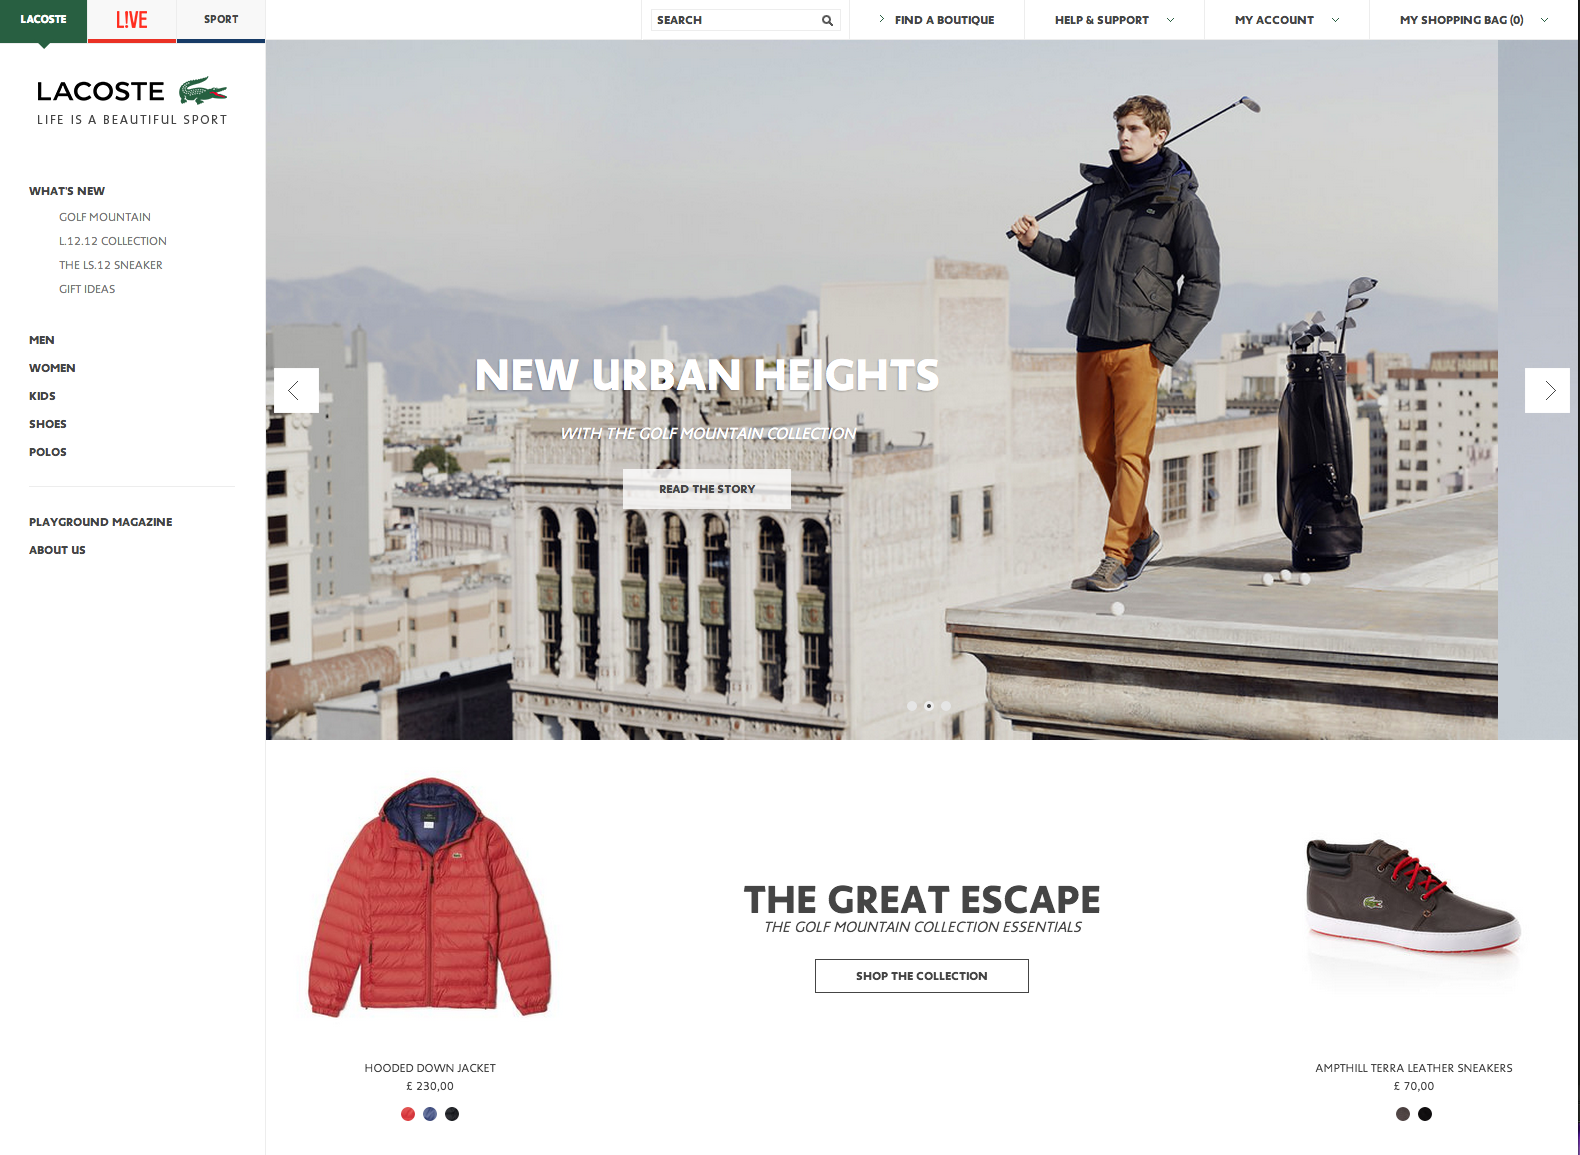 new styles d6f64 b20f7 Lacoste homepage - clean design, product focussed #ecommerce ...